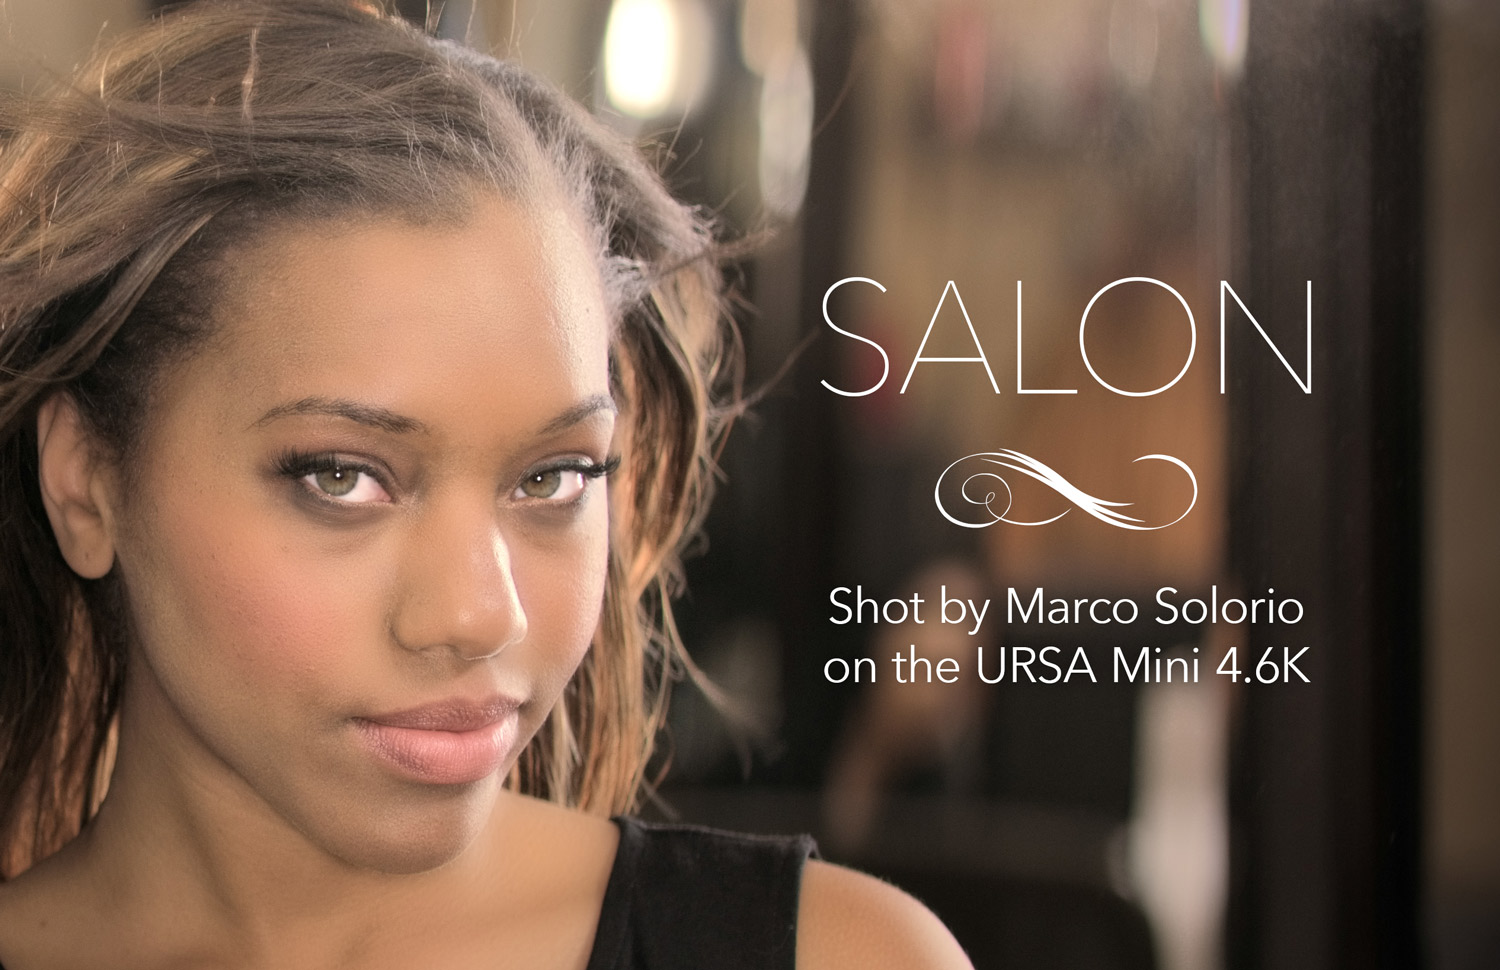 SALON Header Image